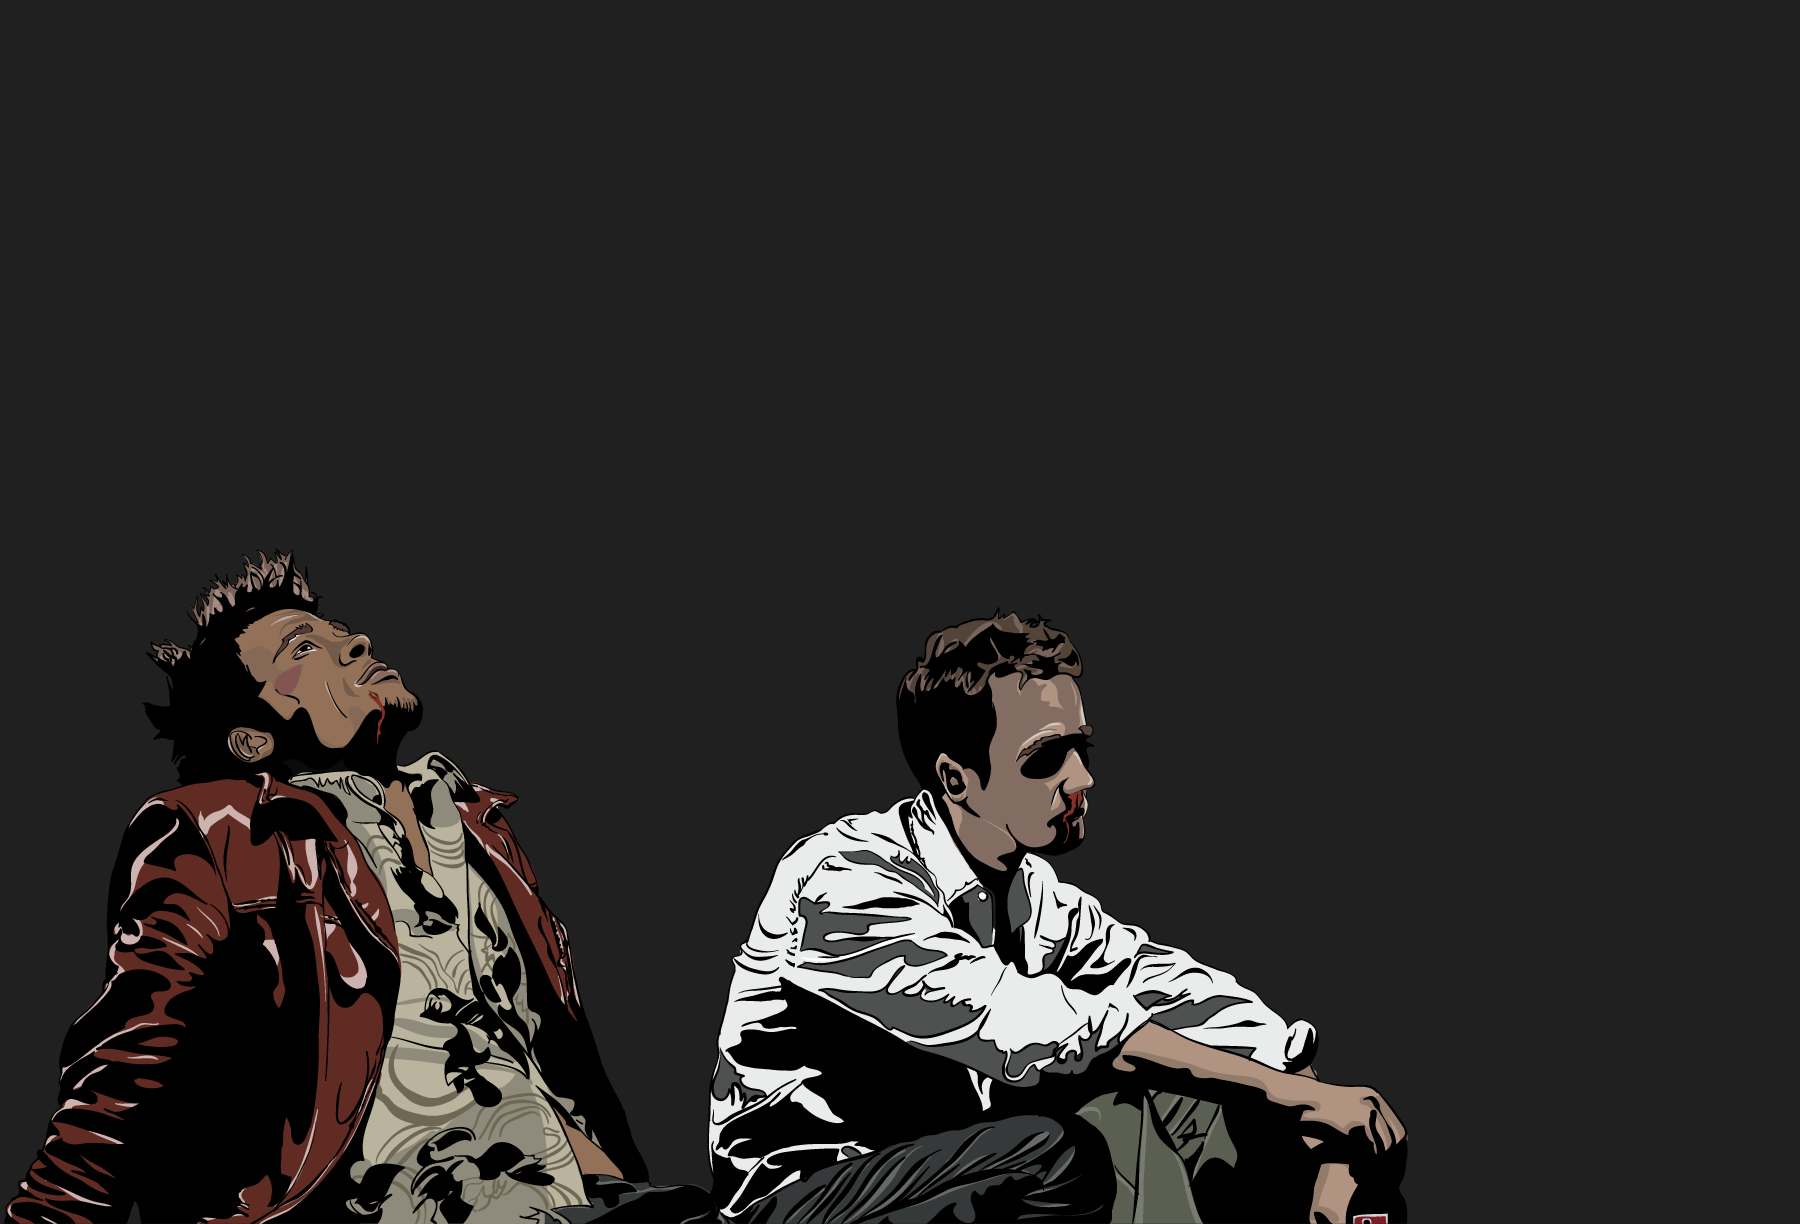 18936 fight club mobile wallpapers | 1920 x 1080